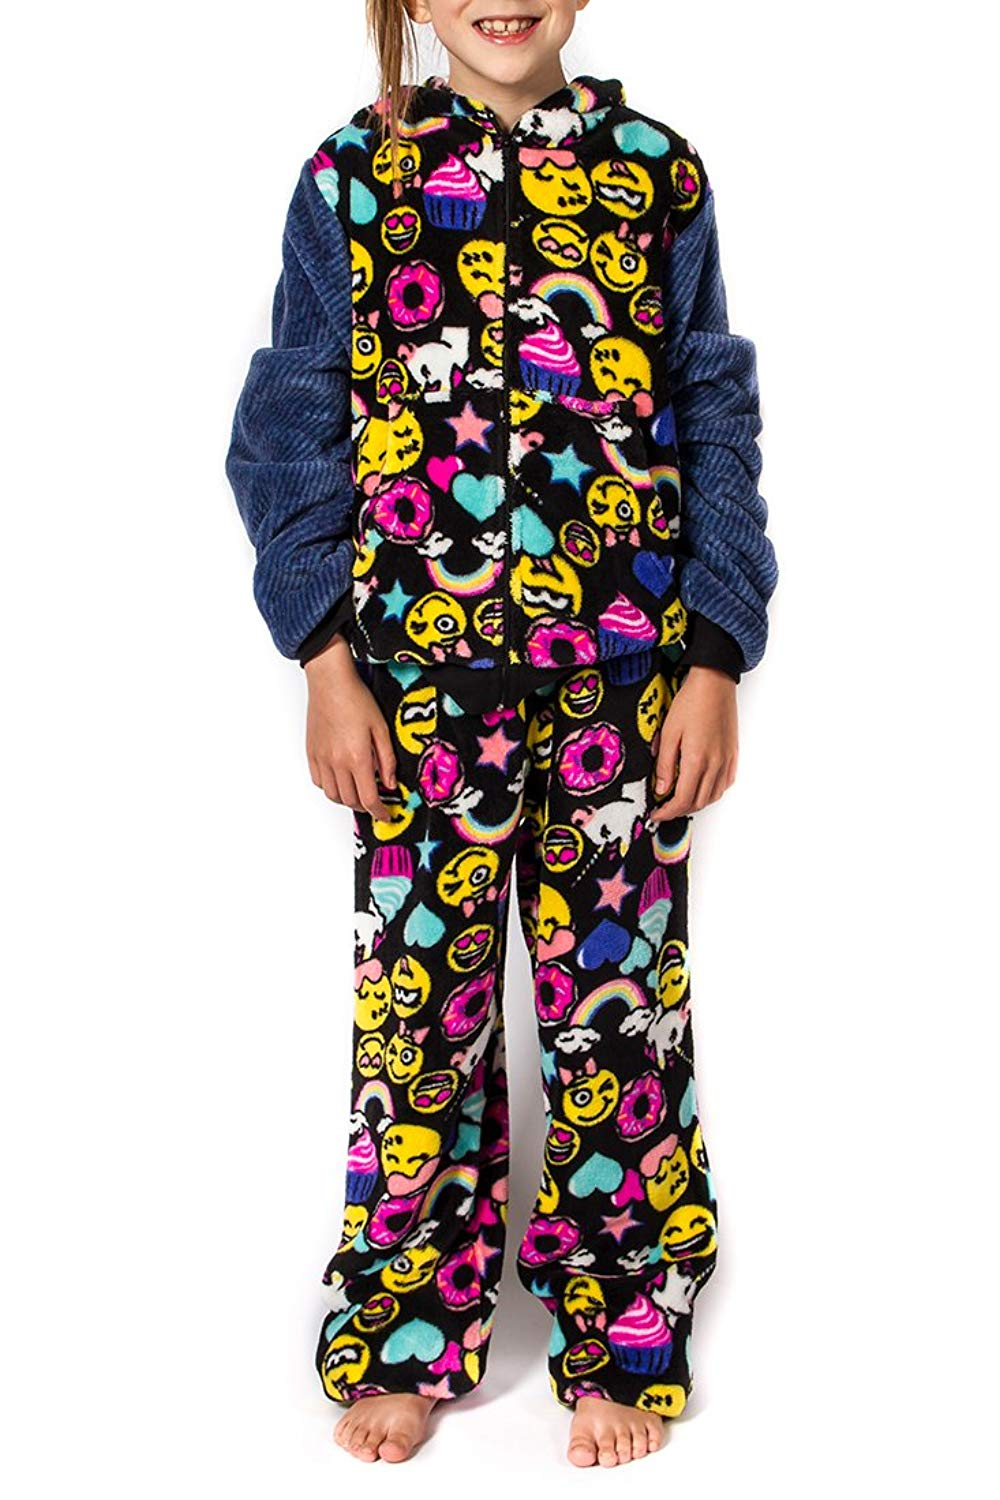 5f4d75e95d Girl peace love fashion emoji pajama pants black hellogoodbuys jpg  1000x1500 Emoji pants